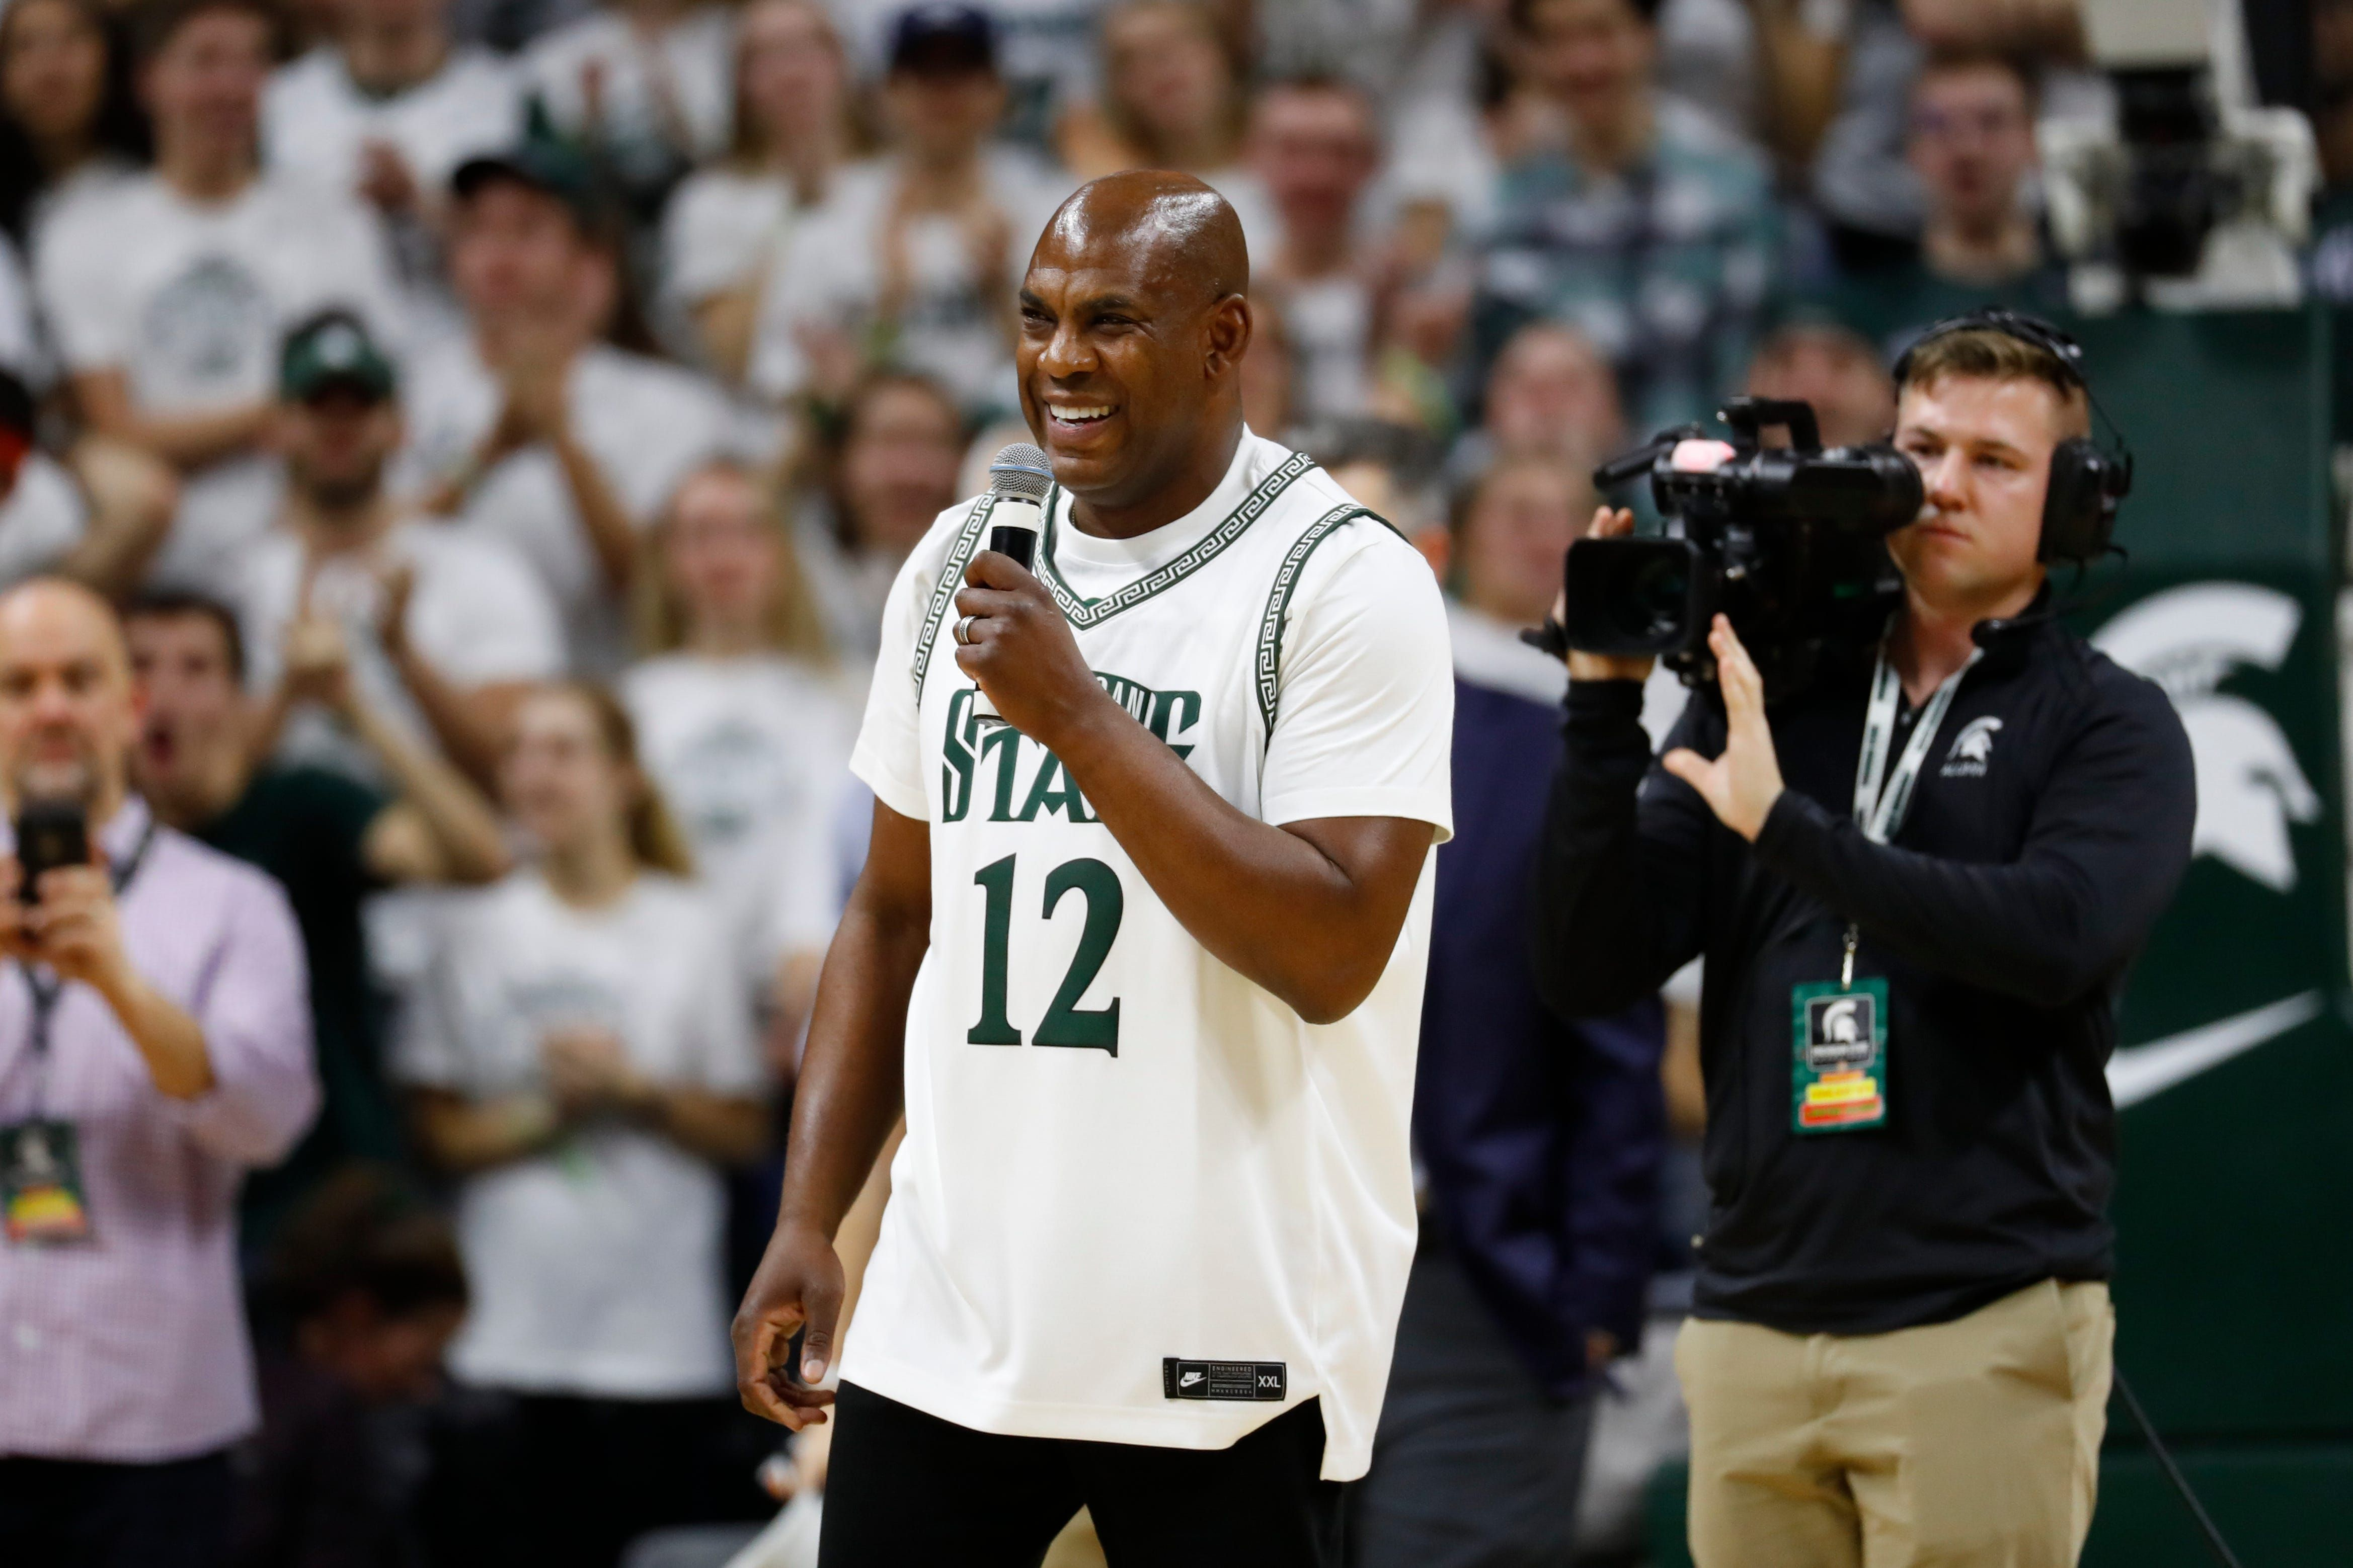 Msu Football Coach Mel Tucker Buys Dinner For Sparrow Hospital Night Shift Workers In 2020 Michigan State Football Football Coach Msu Football